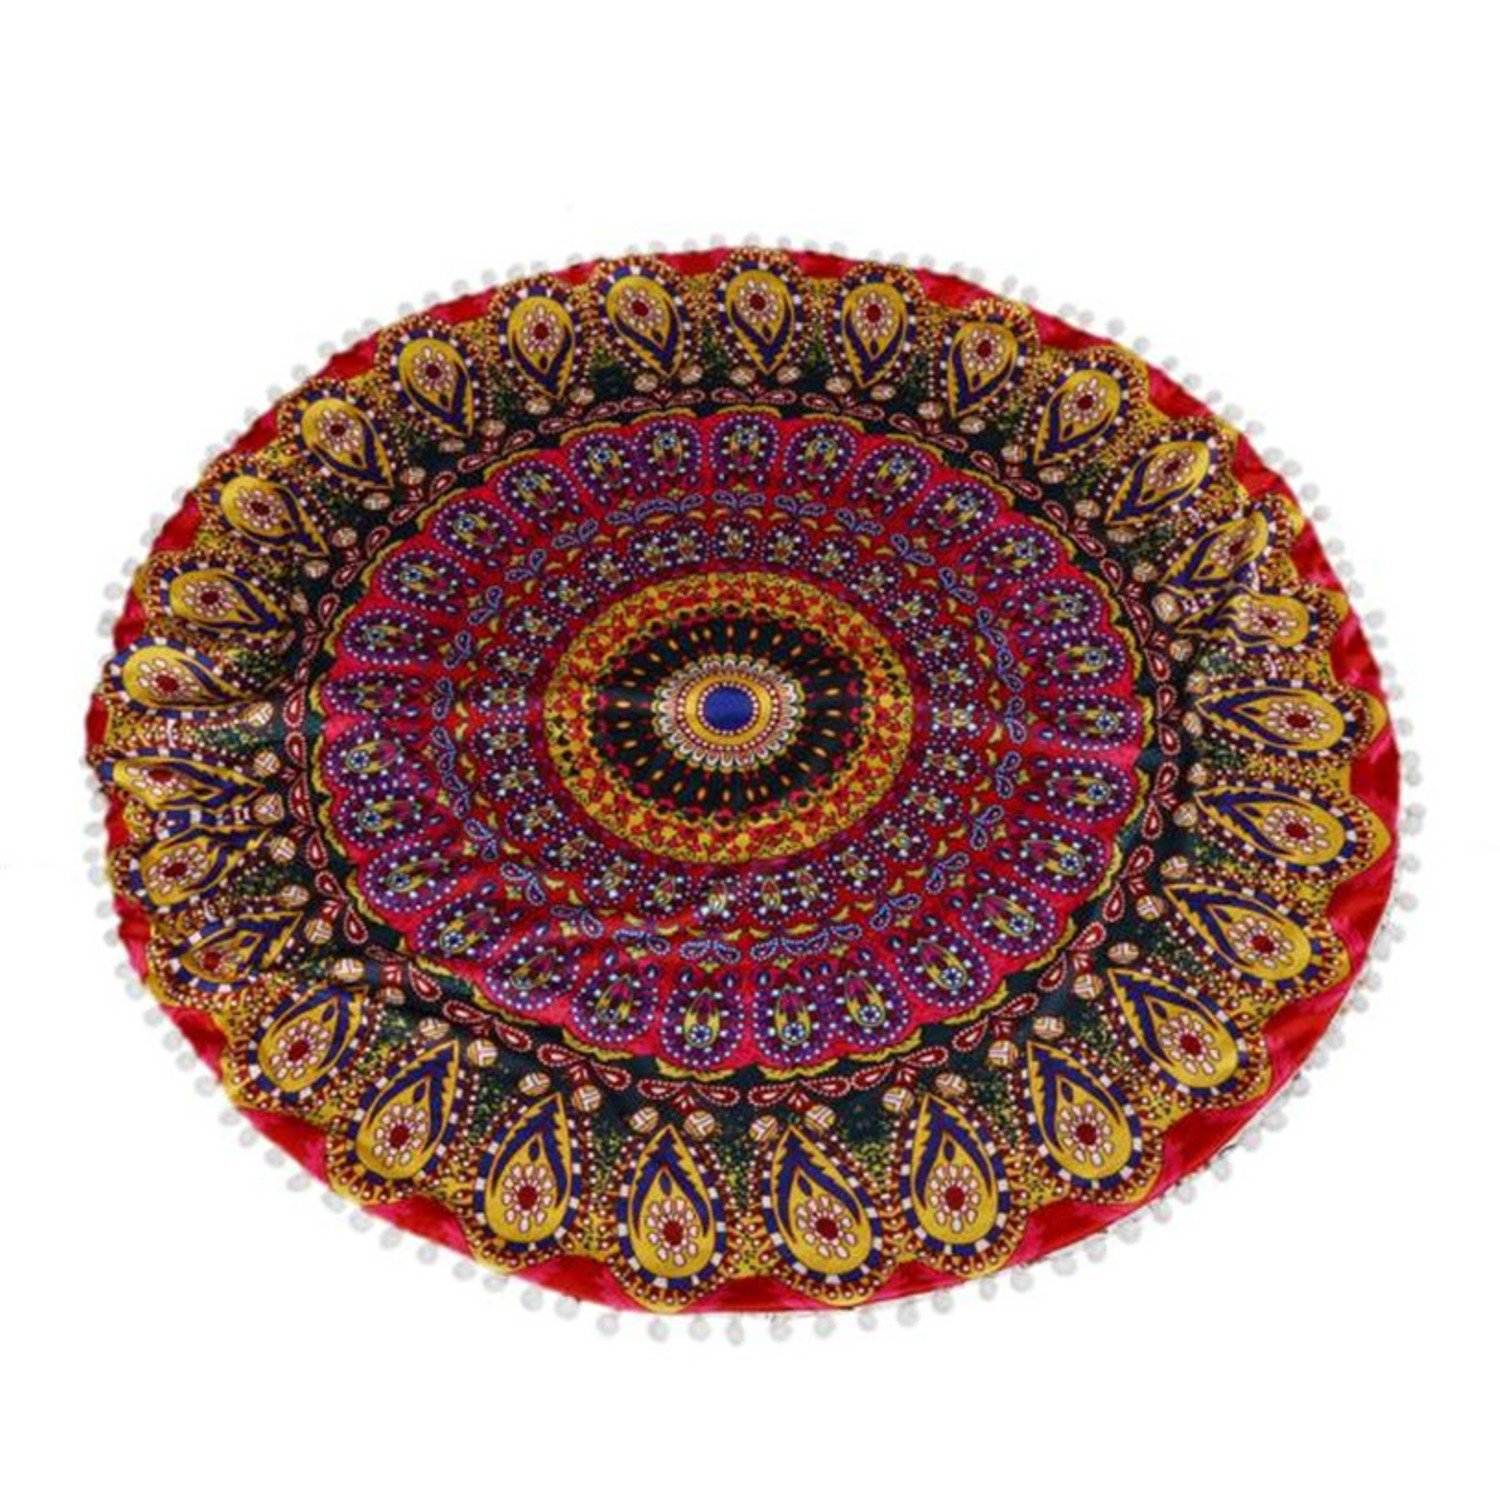 Floor Pillows Round Bohemian Meditation Beautiful Are Sold With Or Without The Filler. Style India